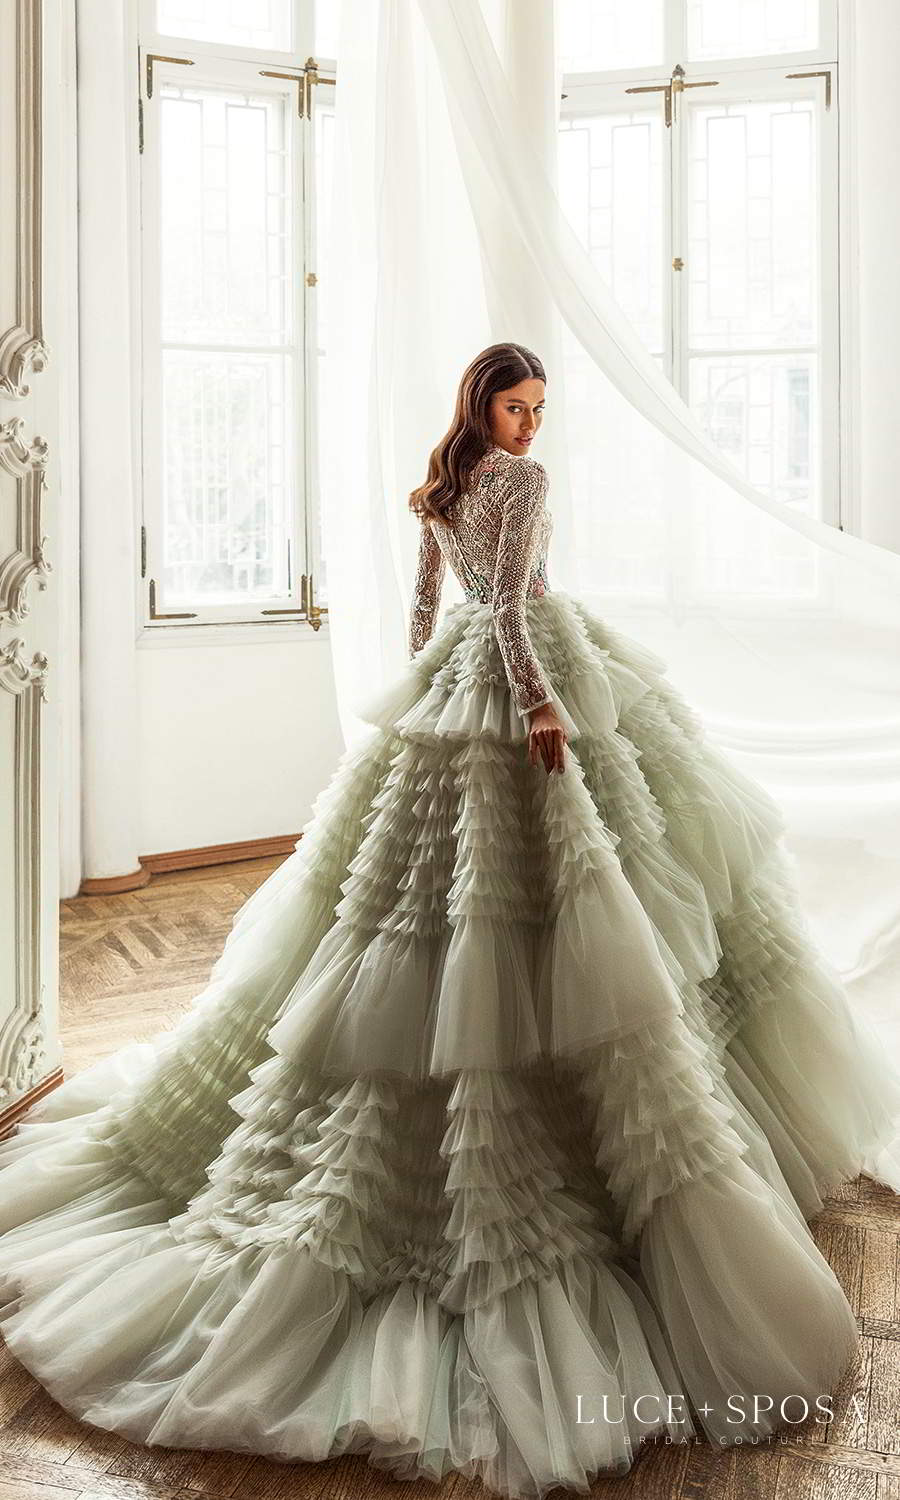 luce sposa 2021 shades of couture bridal long sleeves high neckline heavily embellished bodice a line ball gown wedding dress ruffle skirt chapel train light mint green color (abigail) bv